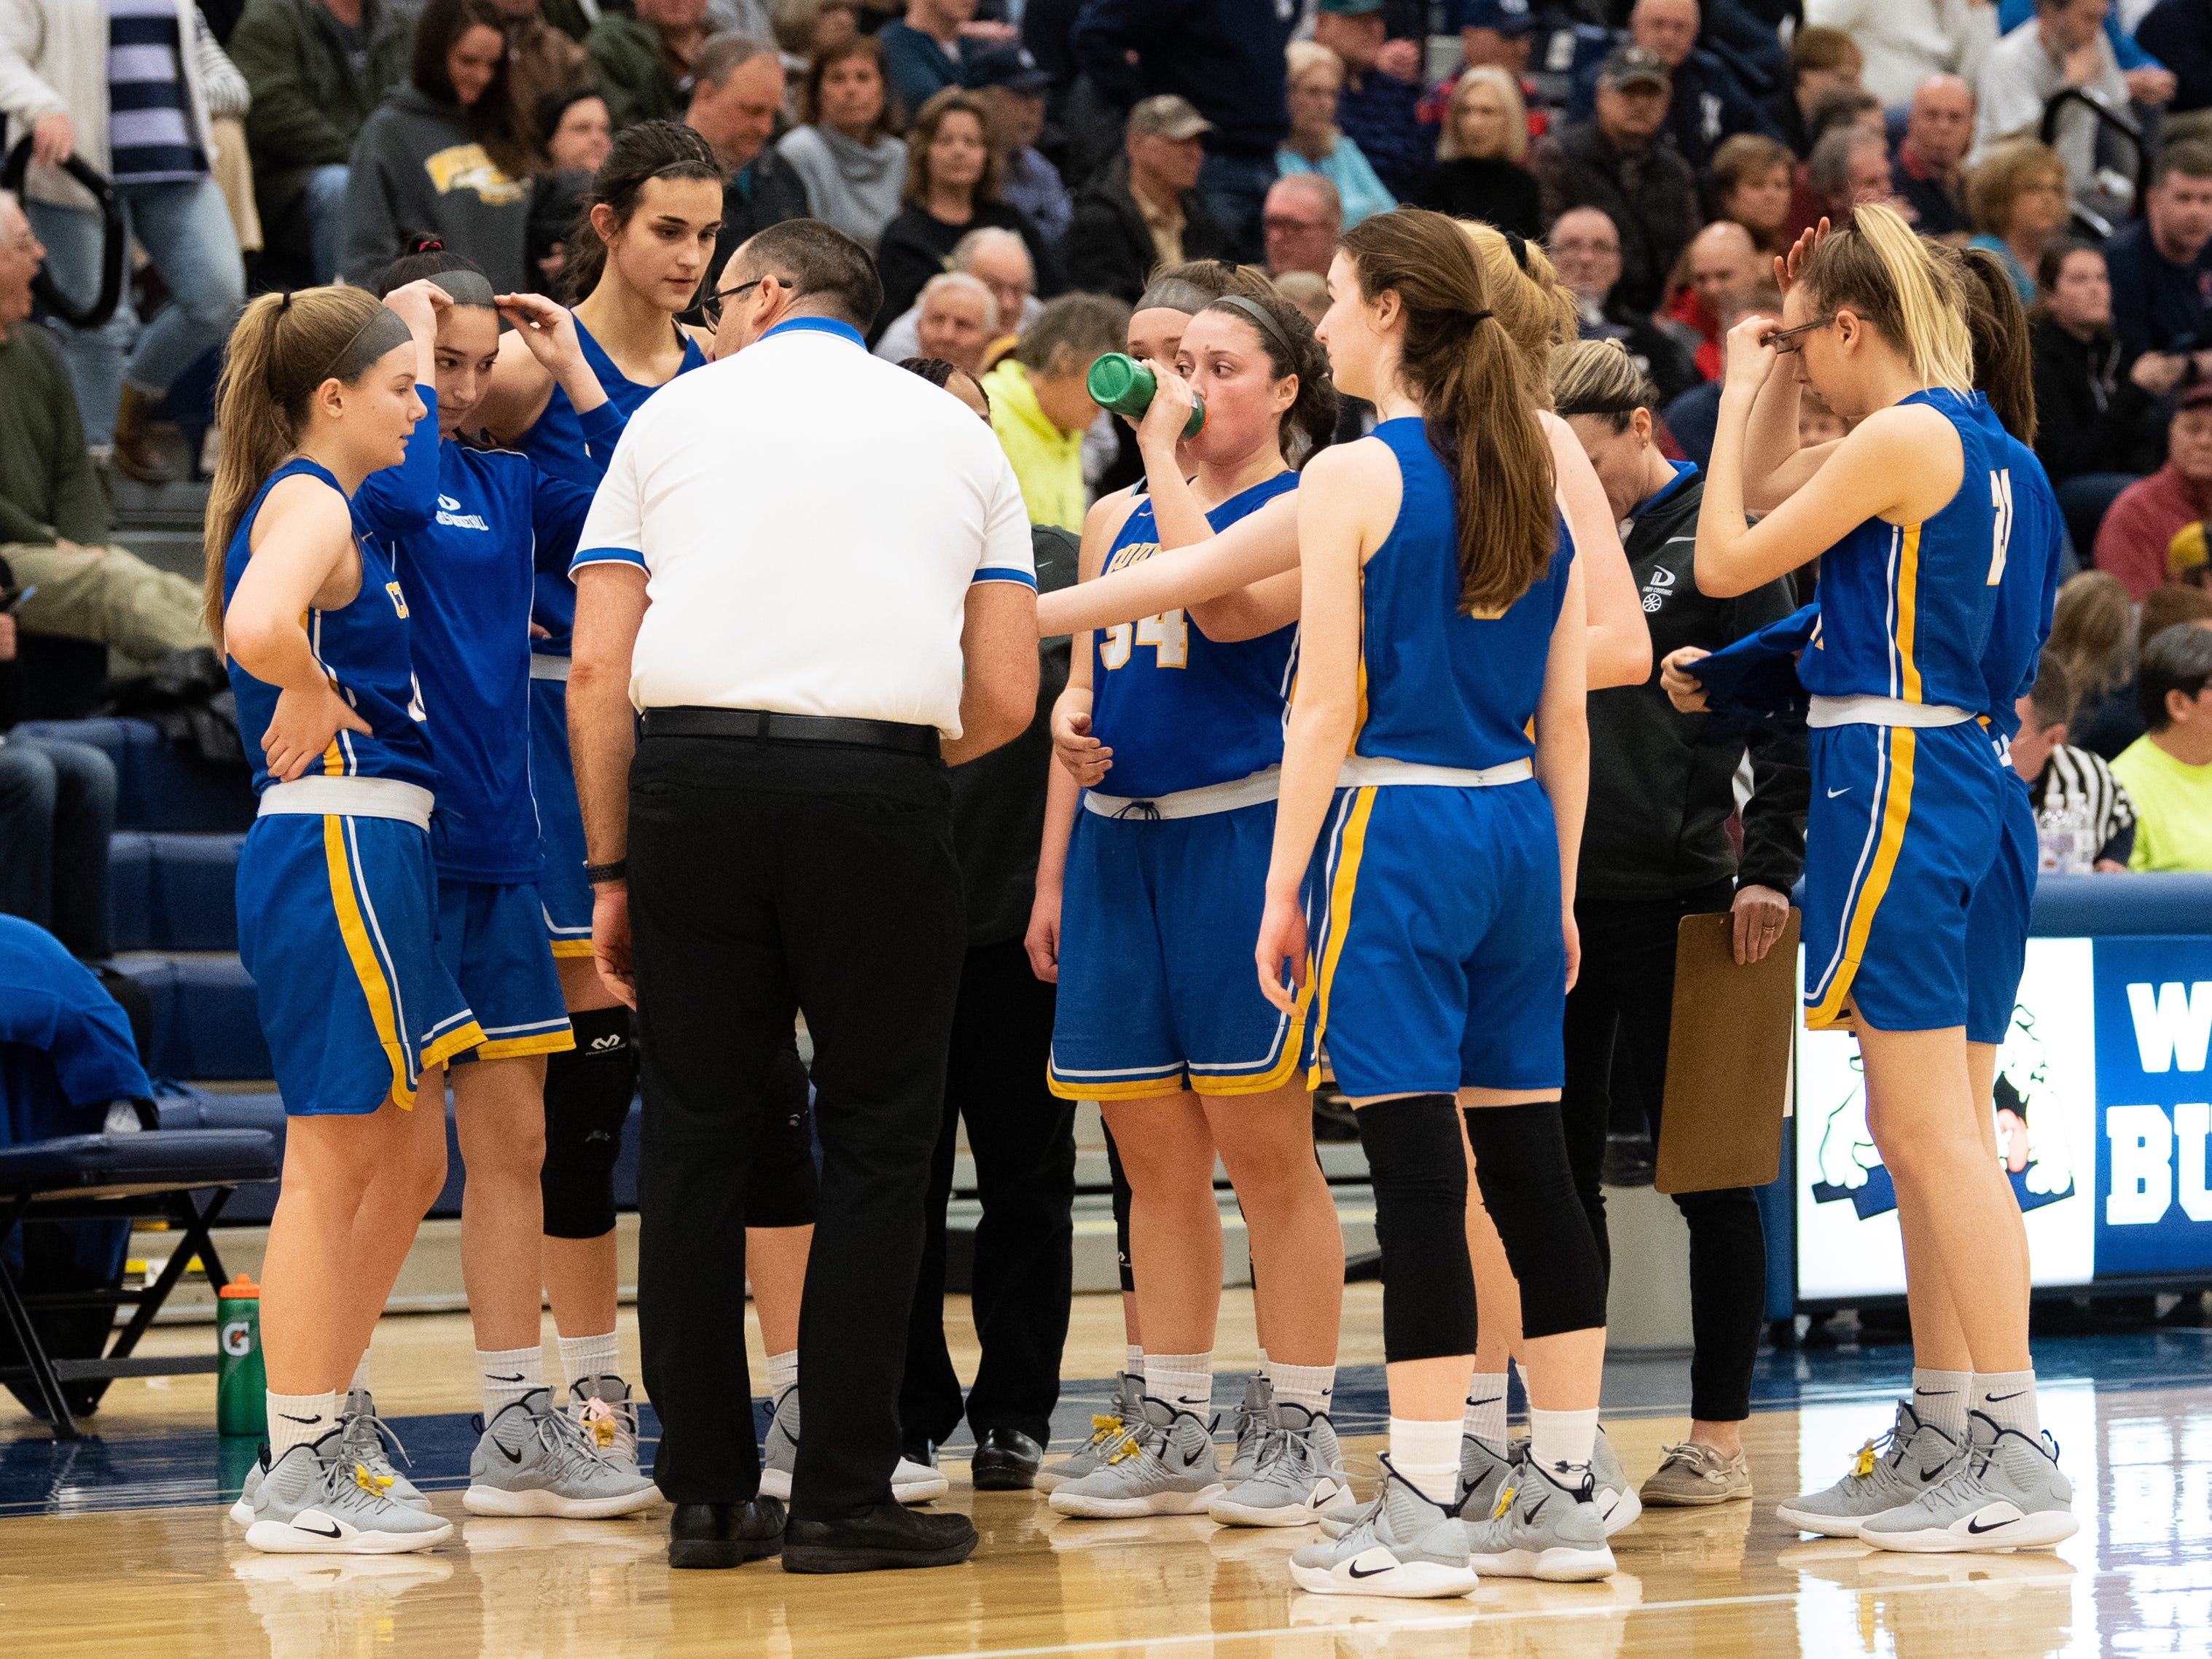 Downingtown East discusses strategy in a timeout during the PIAA first round girls' basketball game between Dallastown and Downingtown East Friday, March 8, 2019 at West York Area High School. The Wildcats defeated the Cougars 43 to 39.